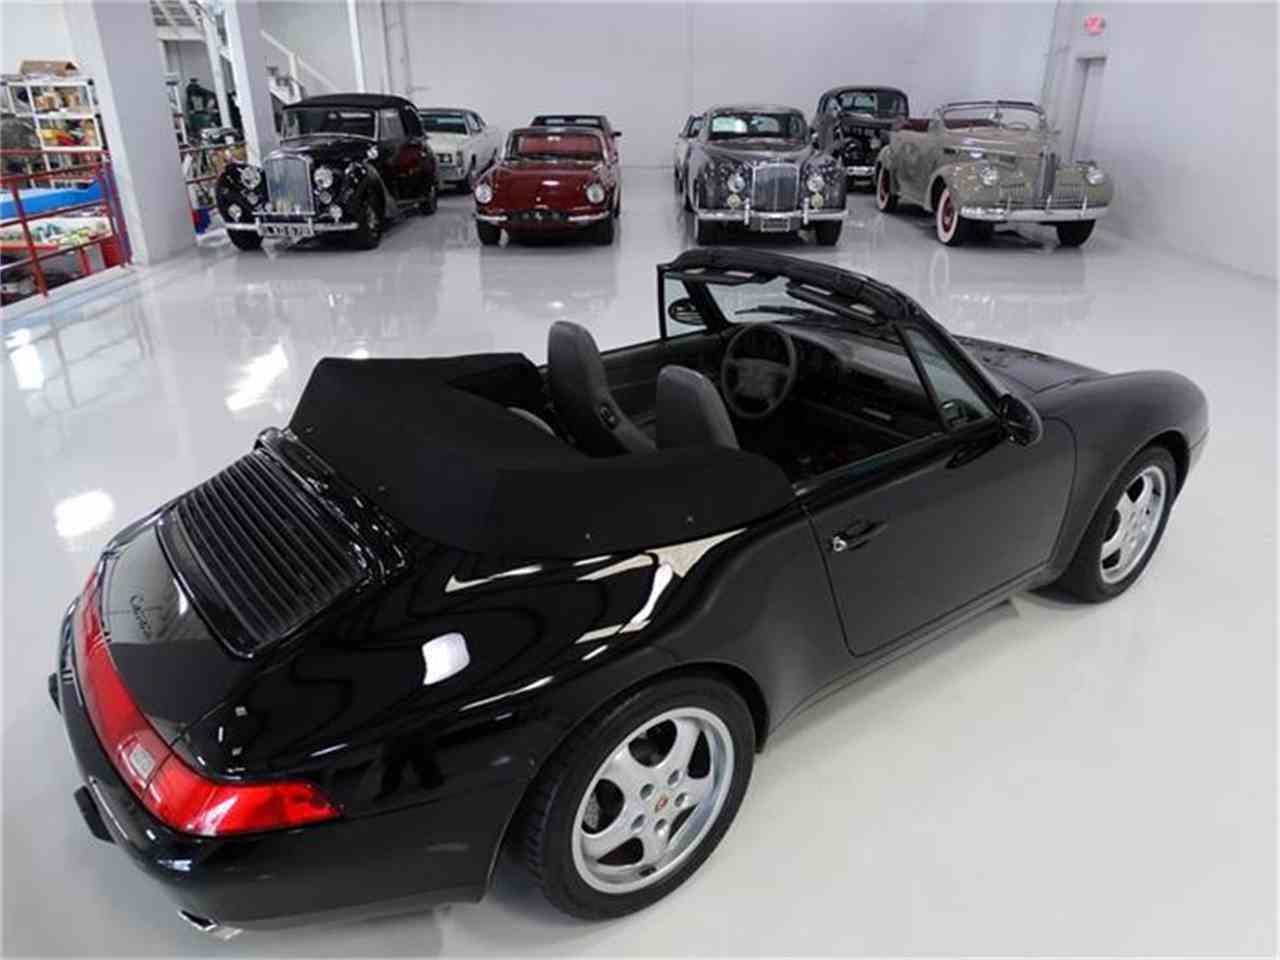 Large Picture of 1998 Porsche 911 Carrera located in Missouri - $69,900.00 Offered by Daniel Schmitt & Co. - GMT3